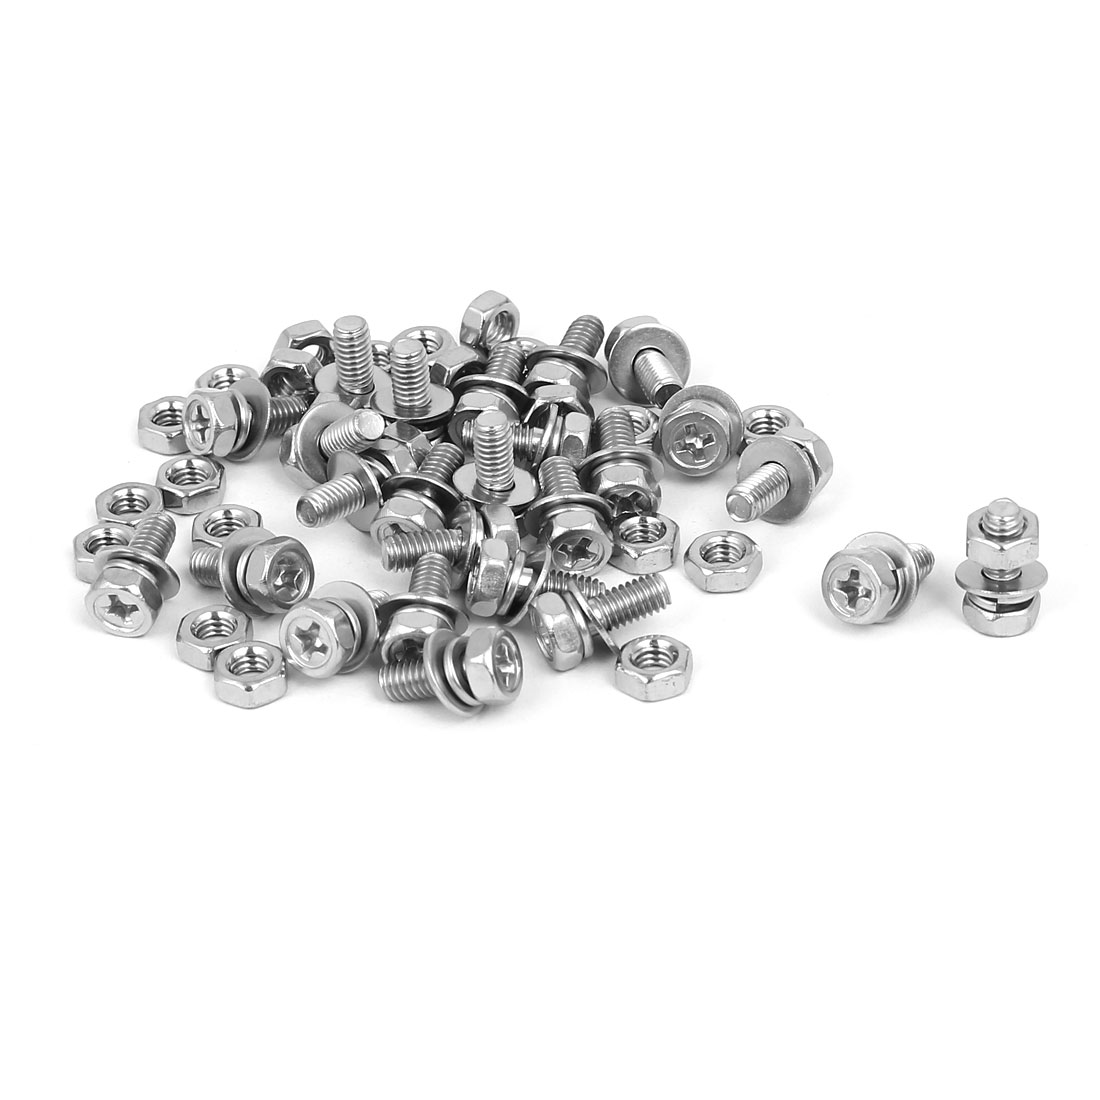 M4 x 10mm 304 Stainless Steel Phillips Hex Head Bolts Nuts w Washers 25 Sets